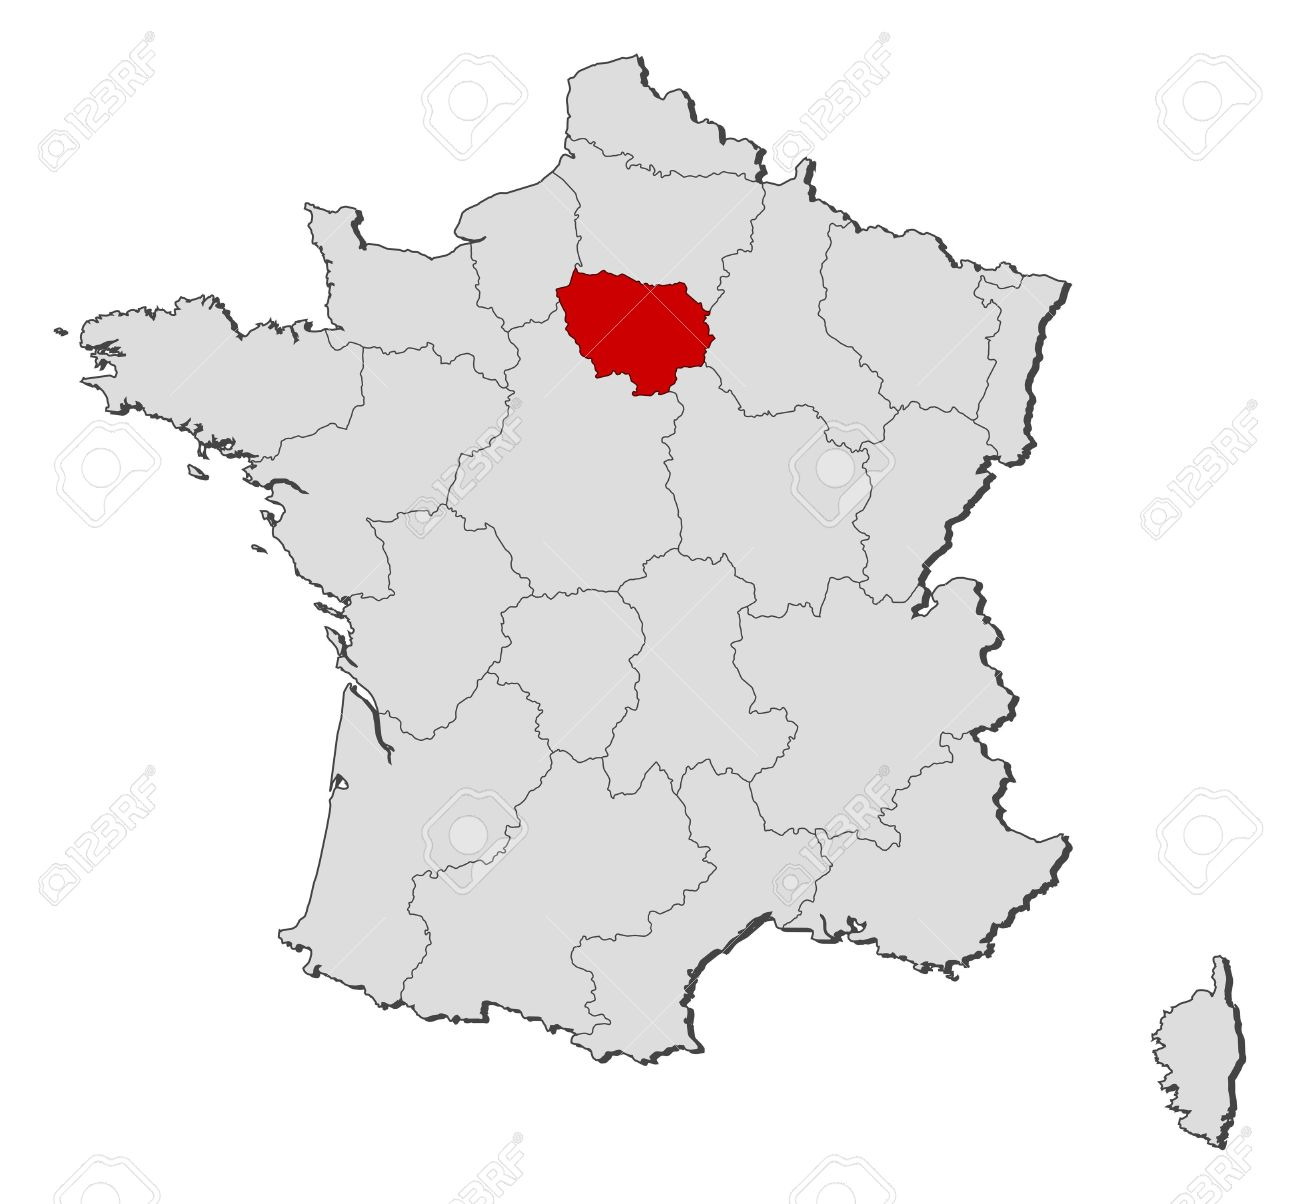 Political Map Of France With The Several Regions Where Ile De France